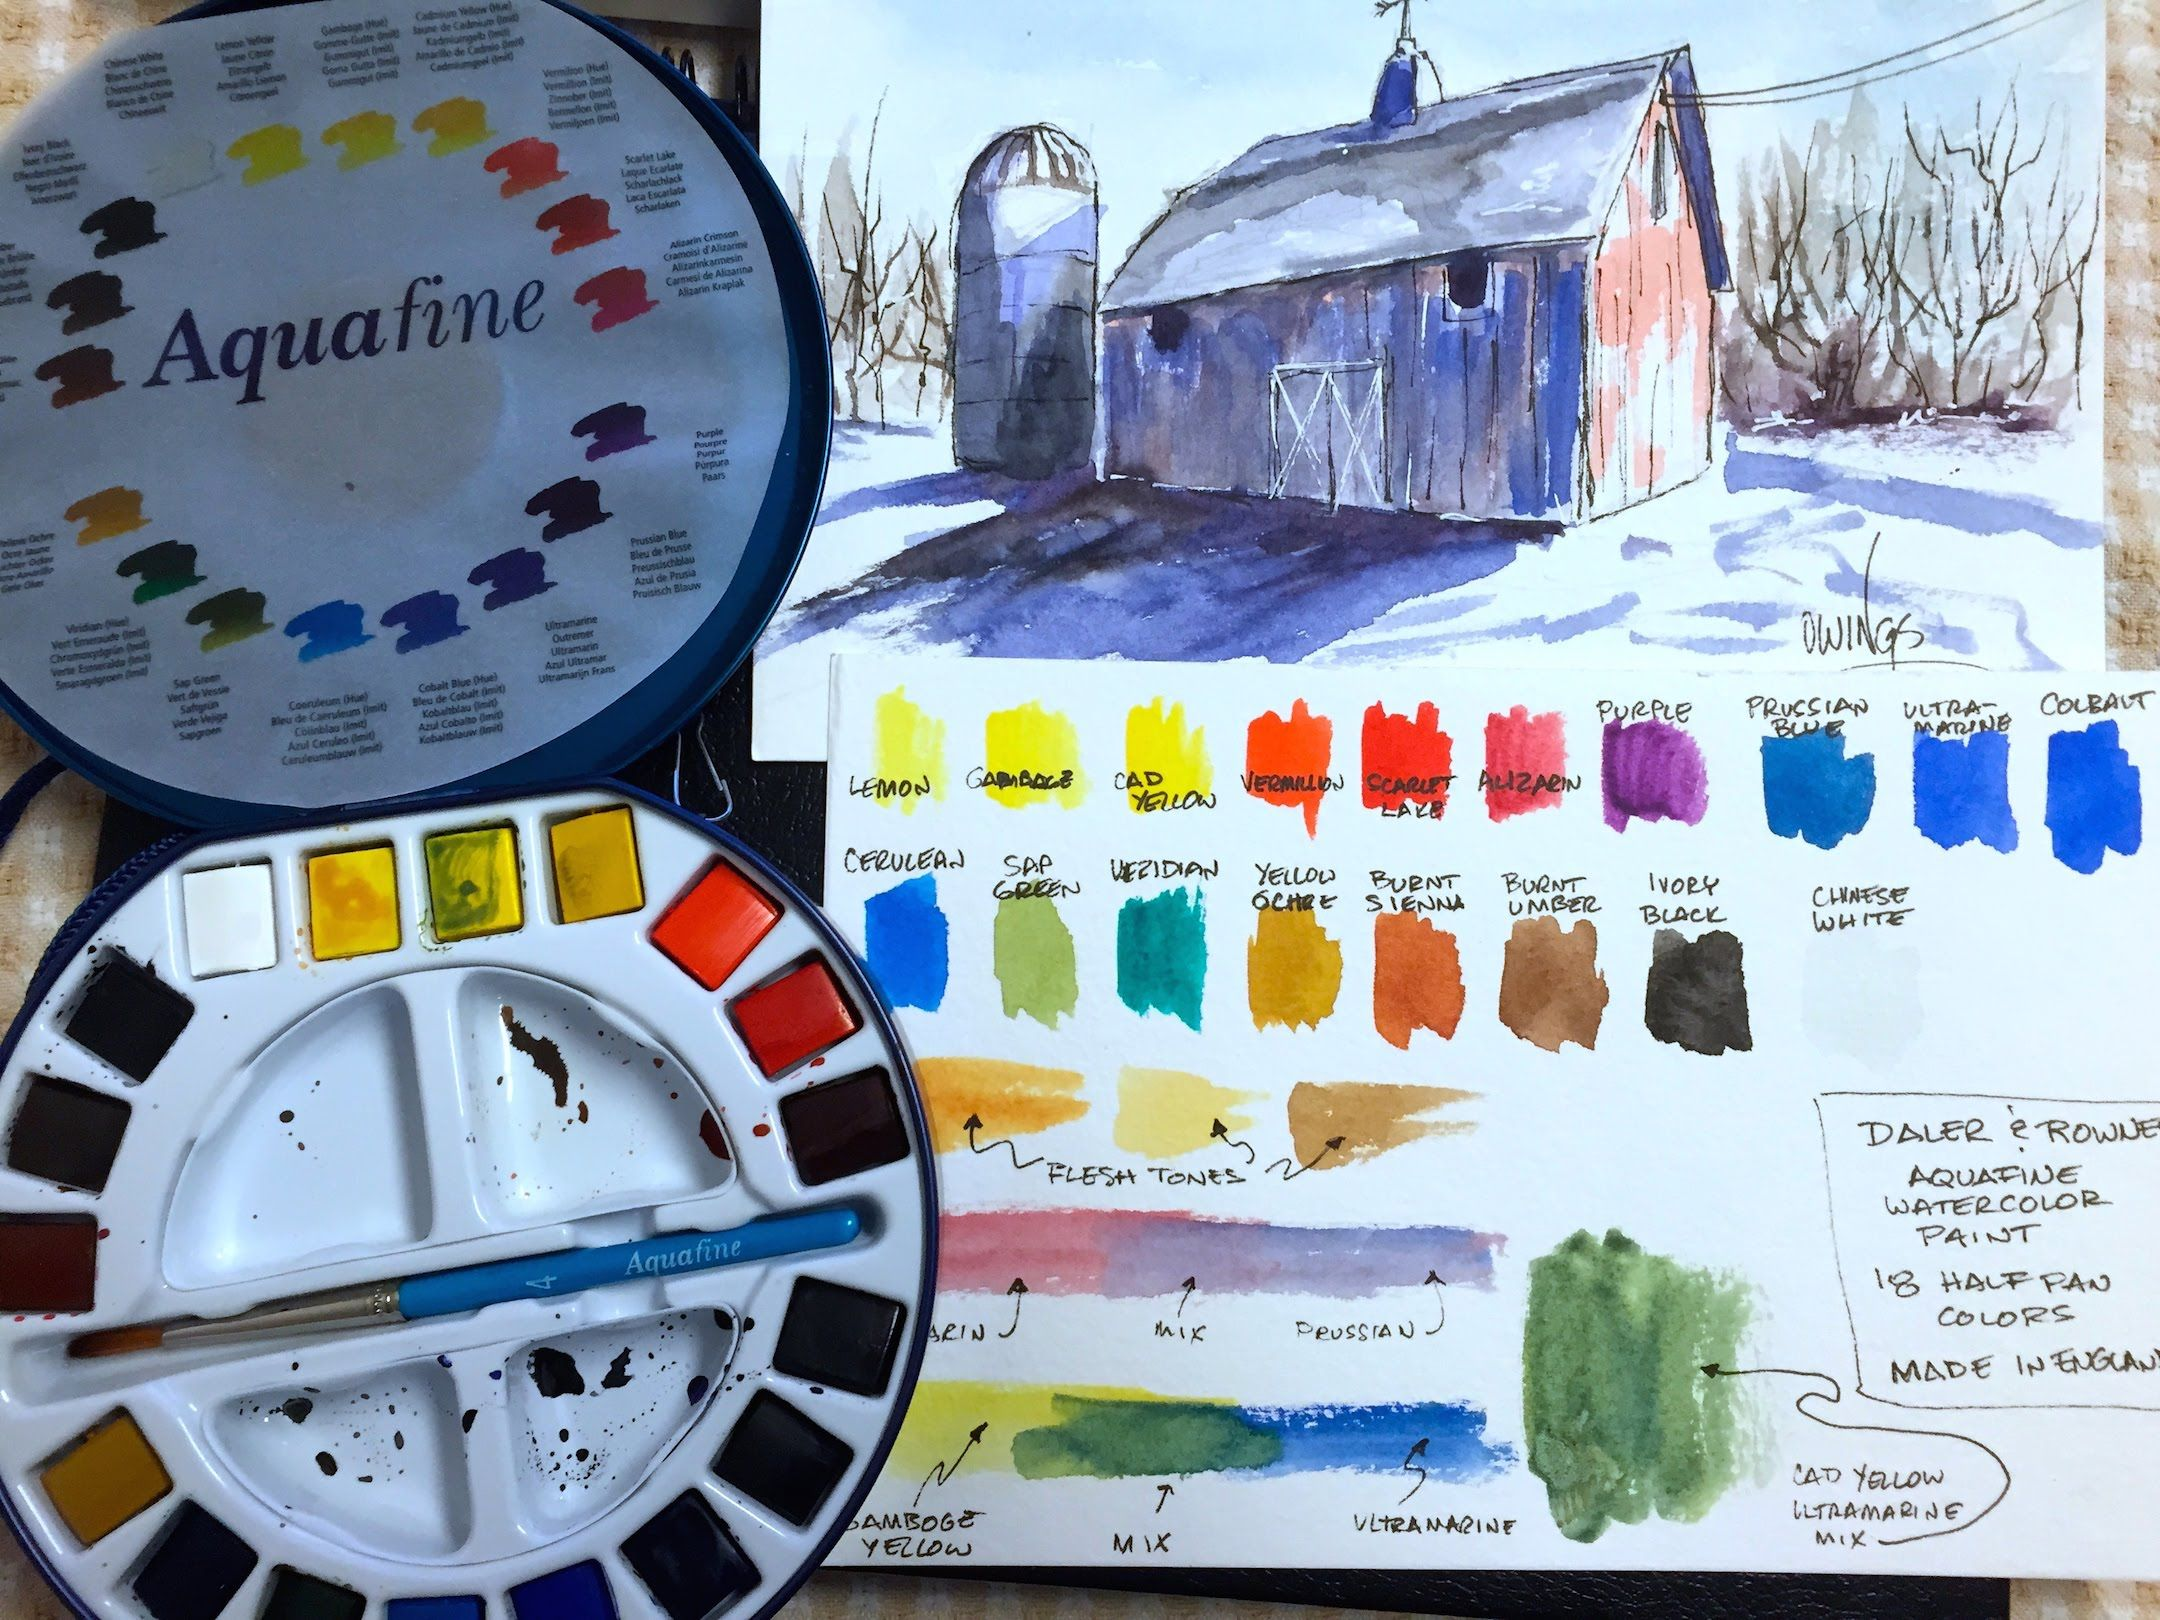 Daler Rowney Aquafine Watercolors Review And Demo Watercolor